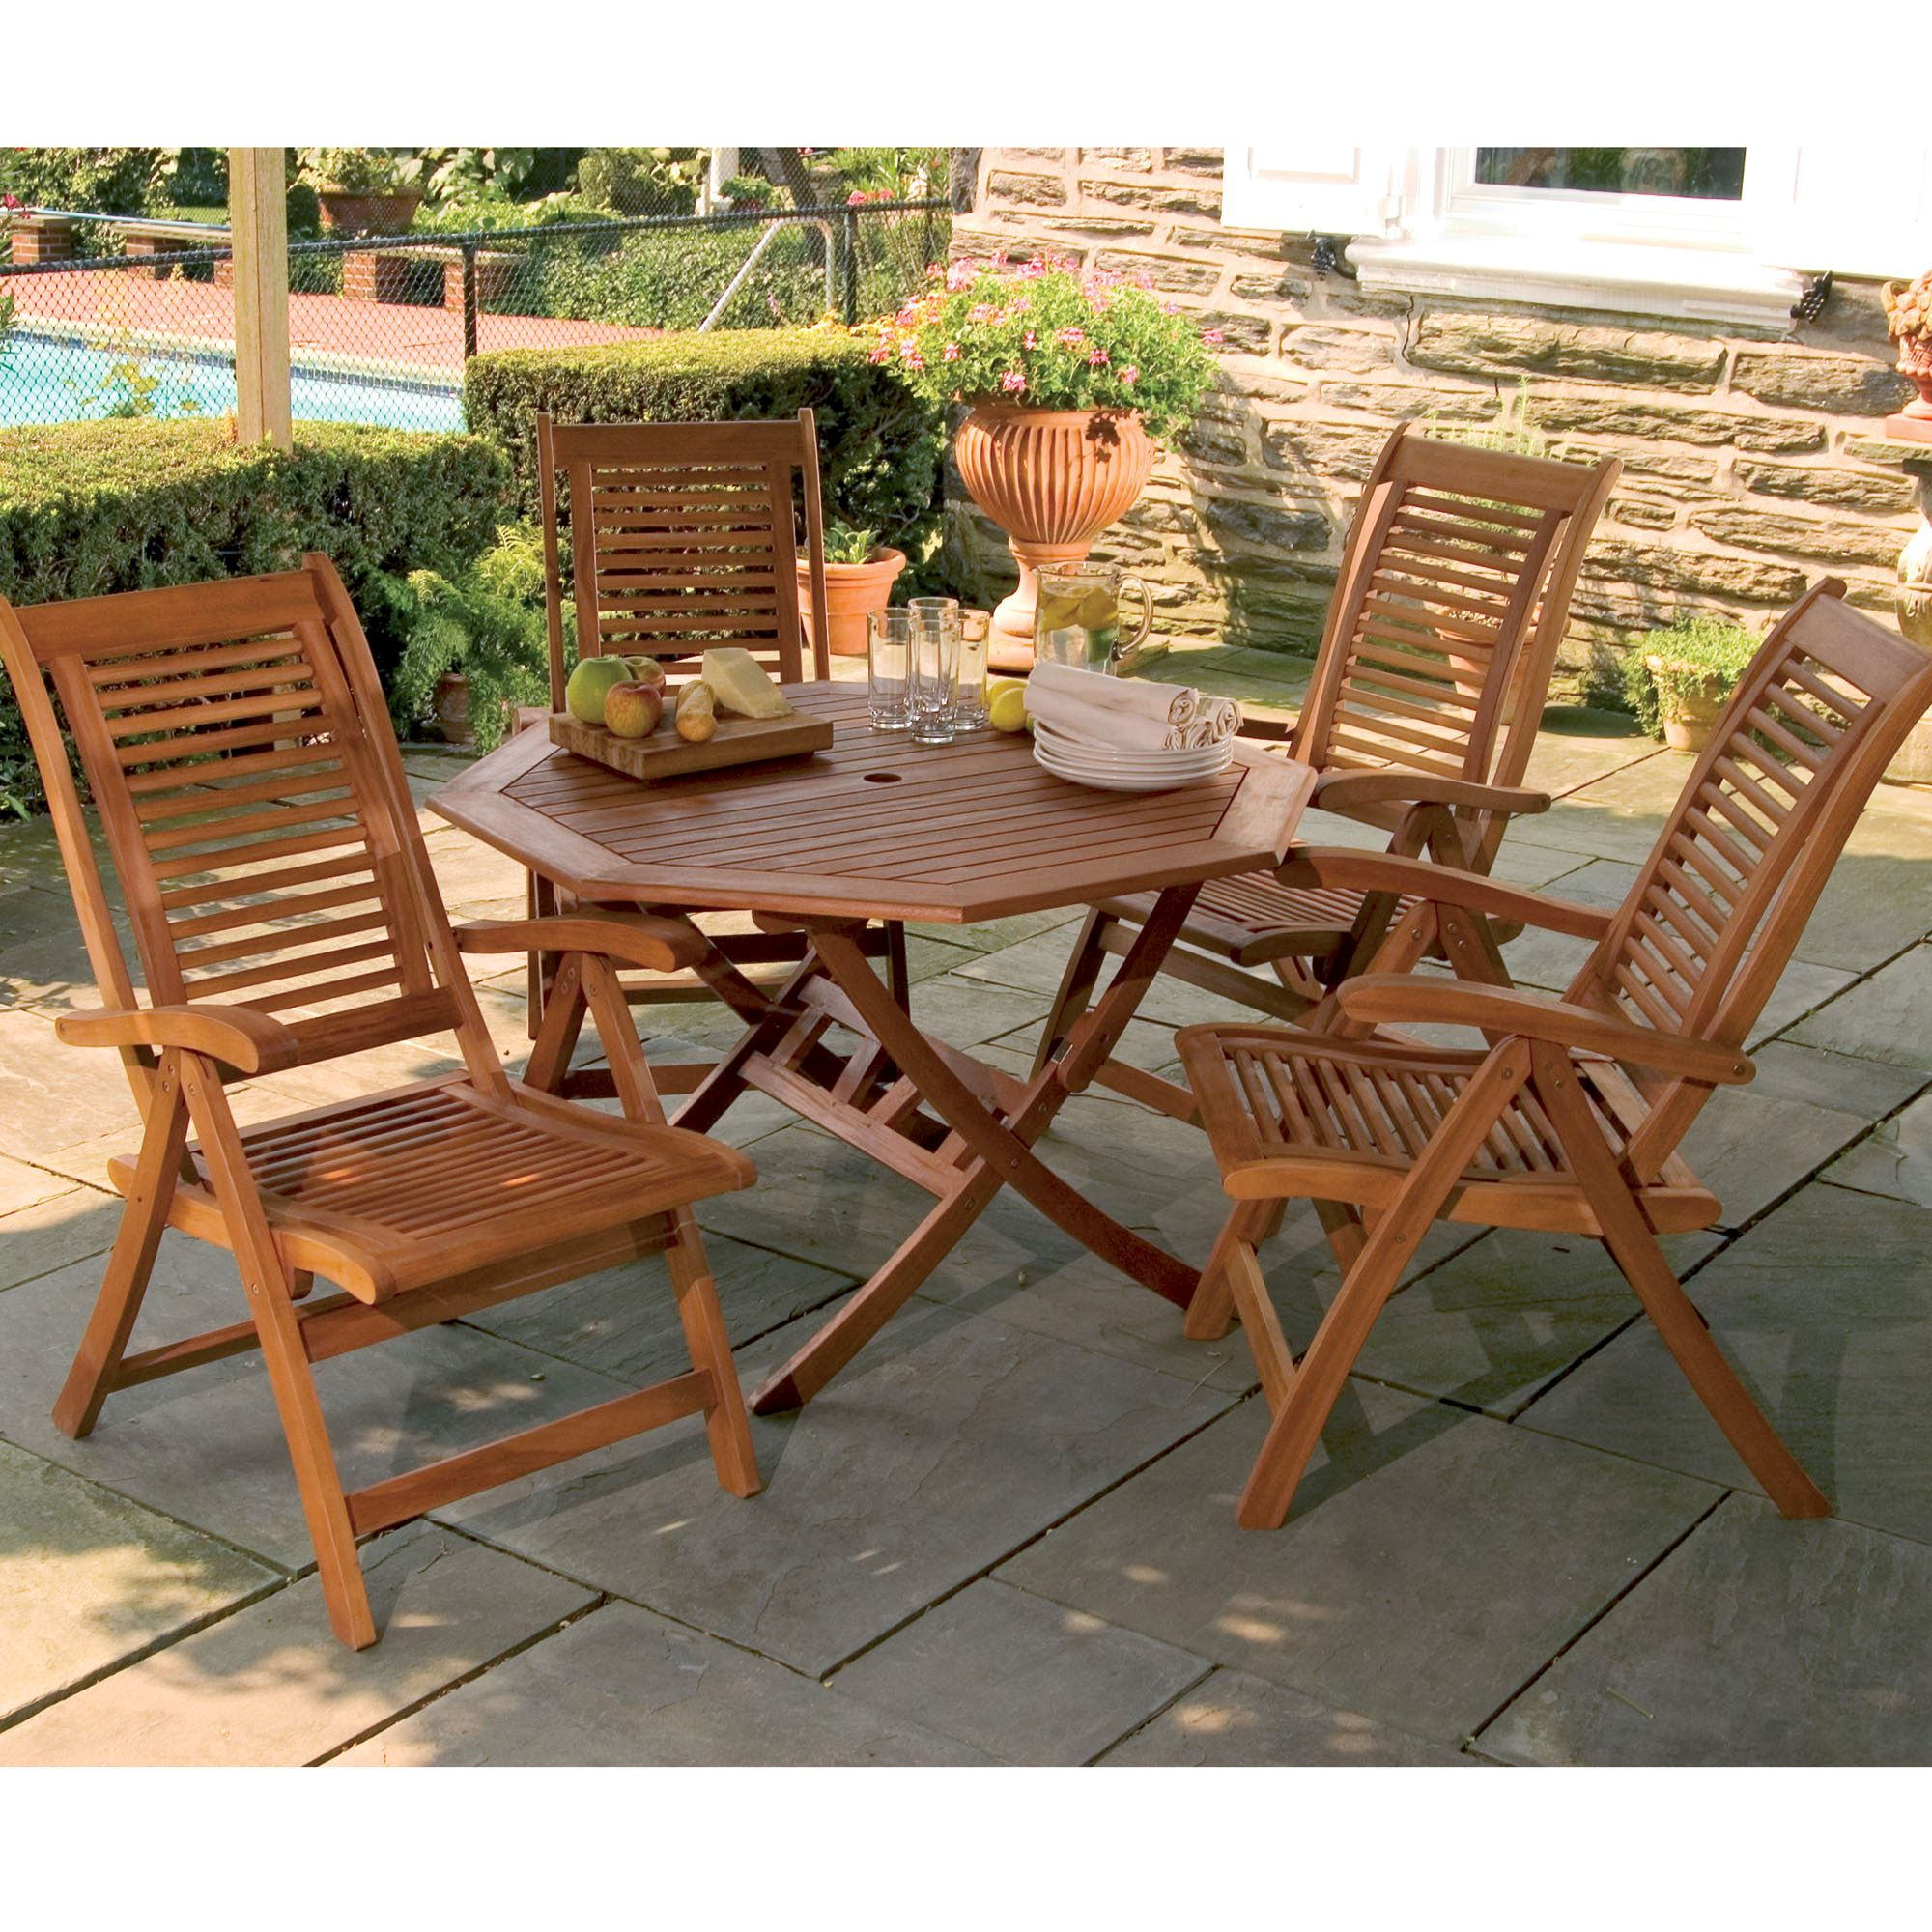 wooden patio furniture lanai shorea wood outdoor dining set GEXVFQE